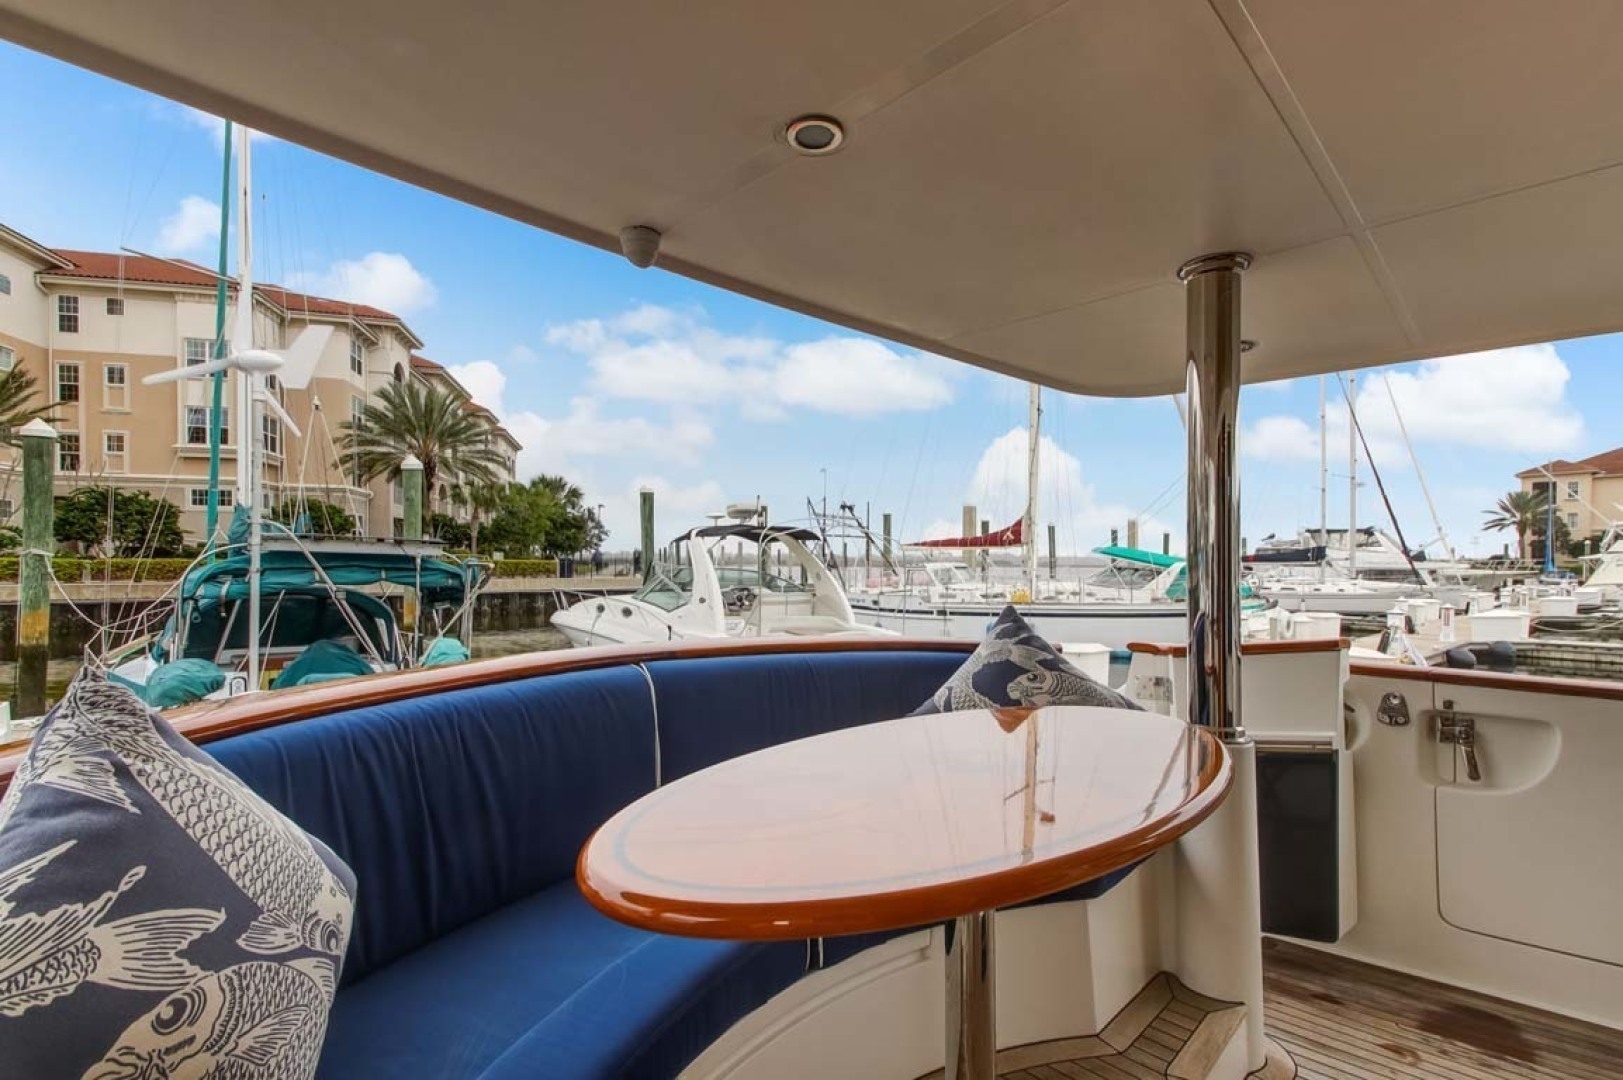 Selene-60 Ocean Trawler 2010-Gypsy Magic Jacksonville-Florida-United States-Aft Deck Seating-1346790 | Thumbnail